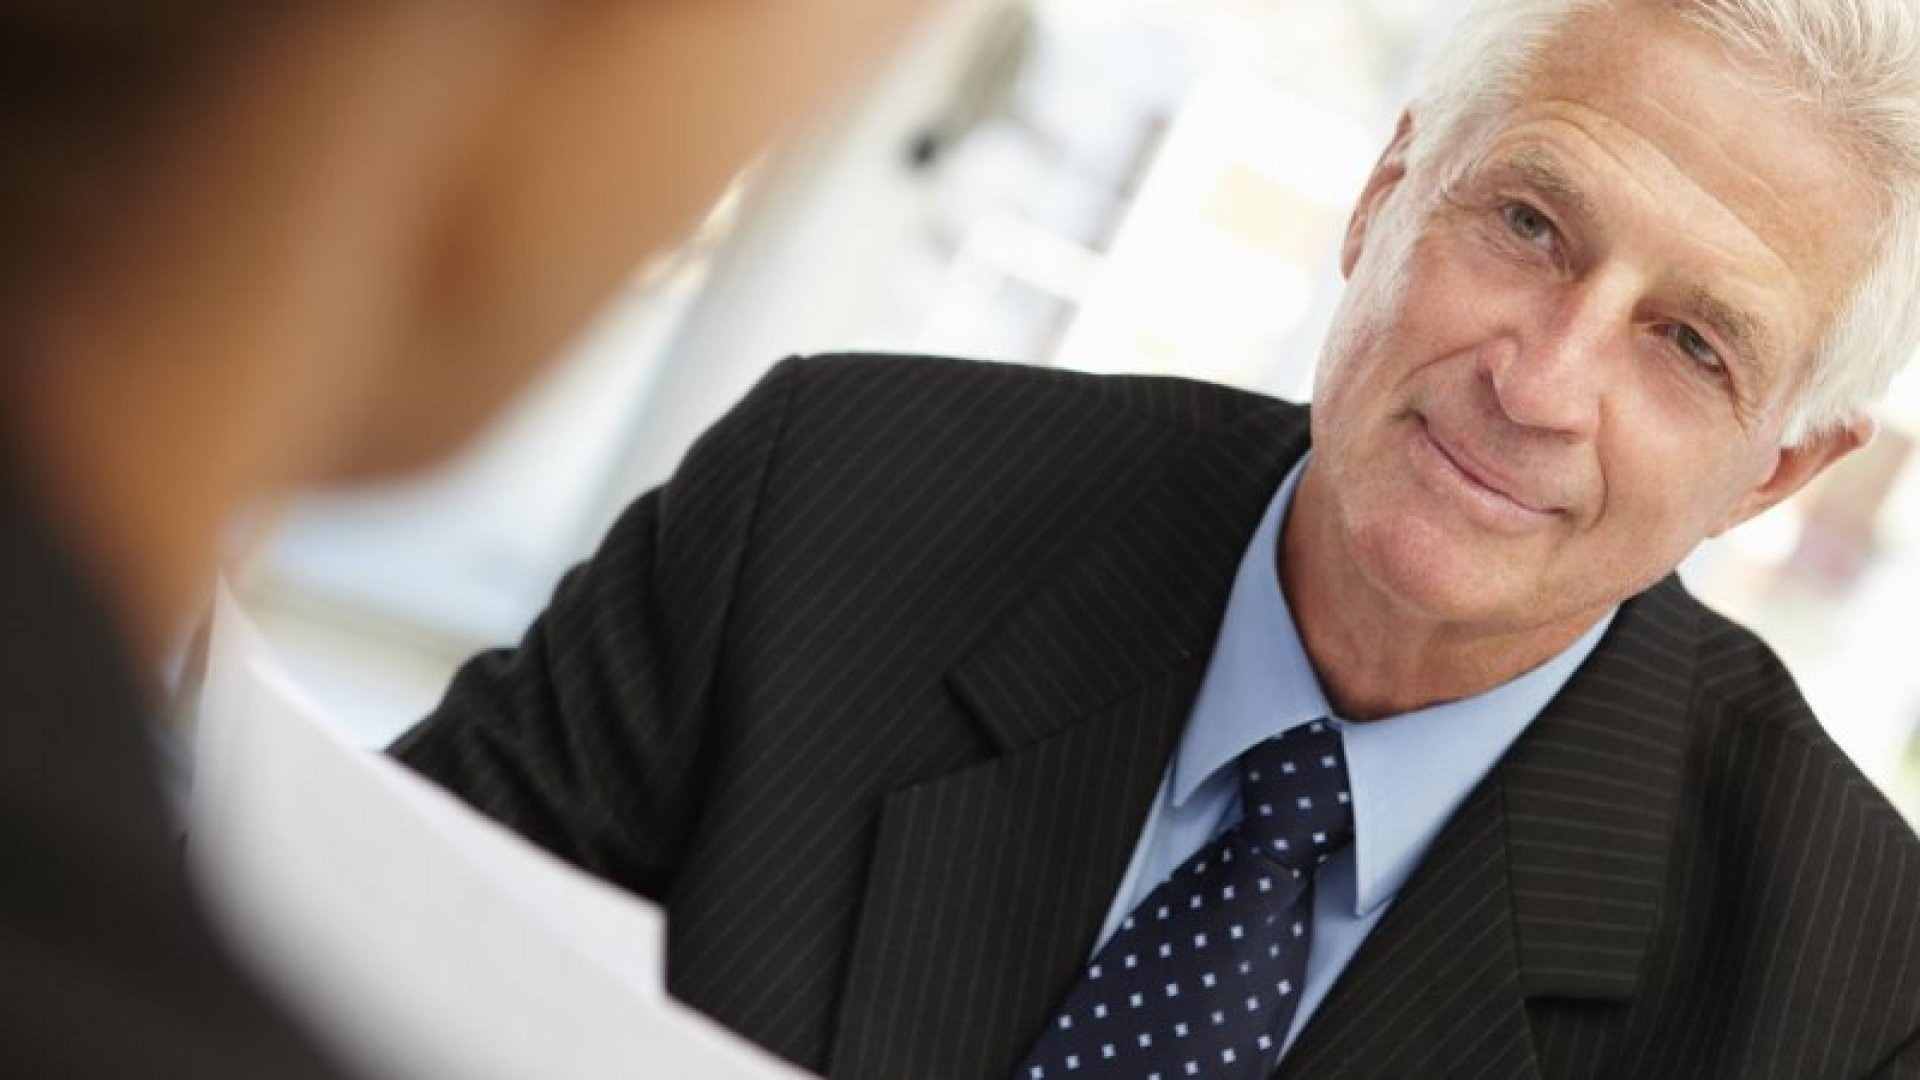 Why You Should Hire Older Workers